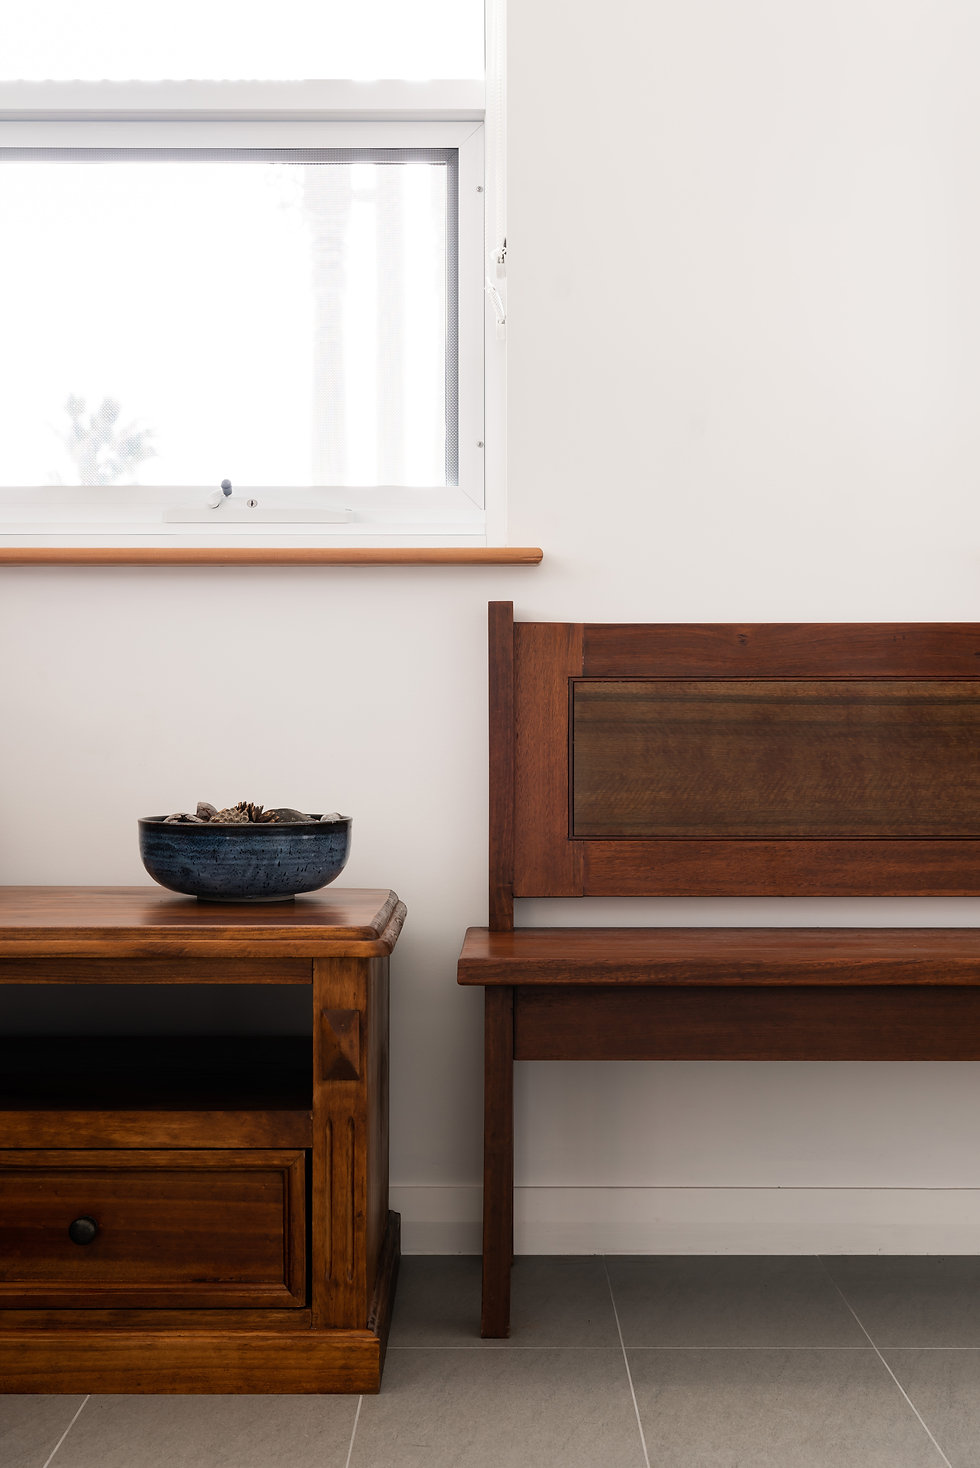 Bunbury Anglican Diocesan Office Building – Church pew recycled for seating and window sills